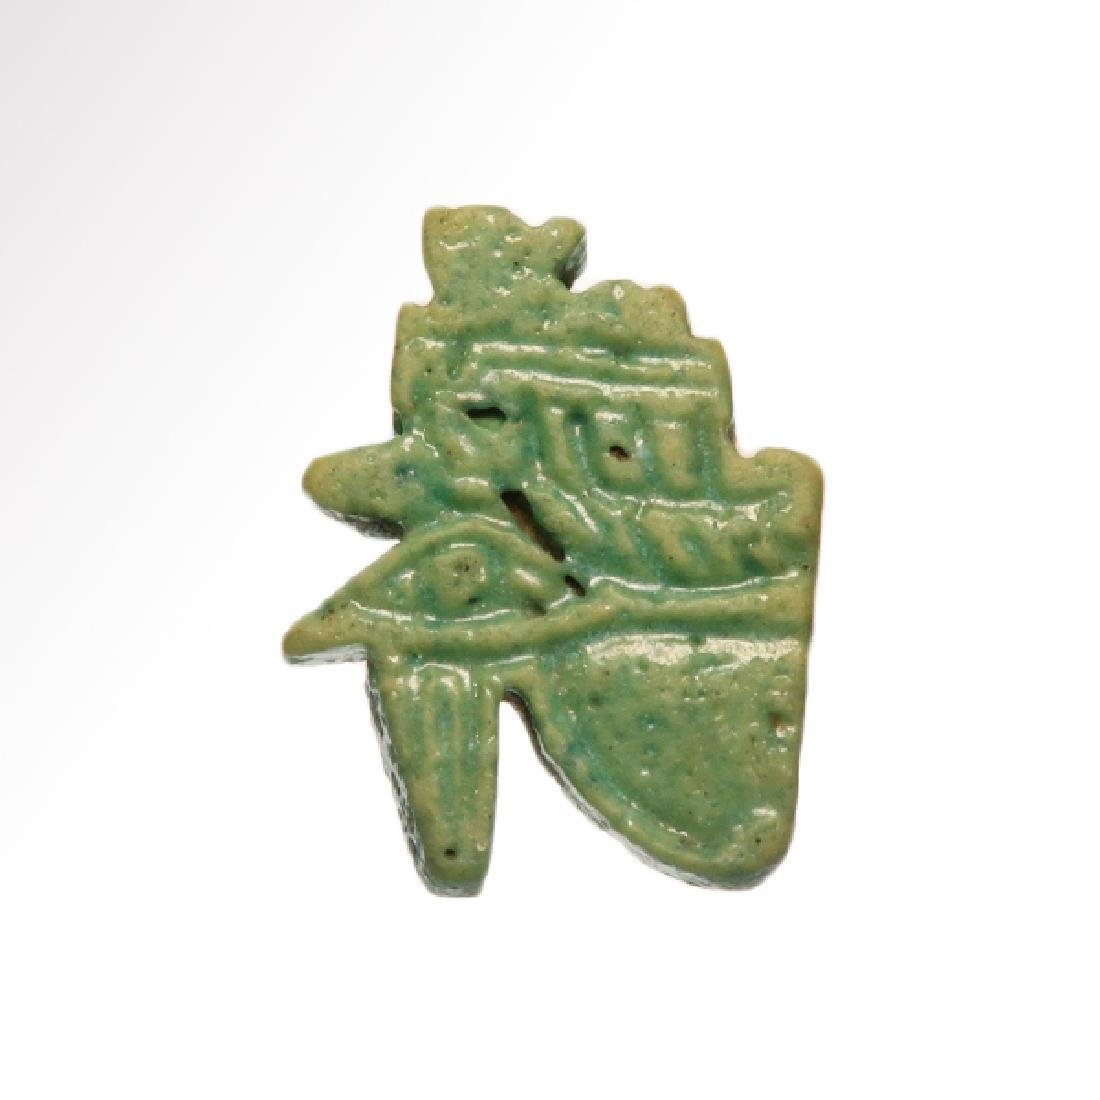 Egyptian Faience Eye Amulet With Seated Lion, C. 350 BC - 2